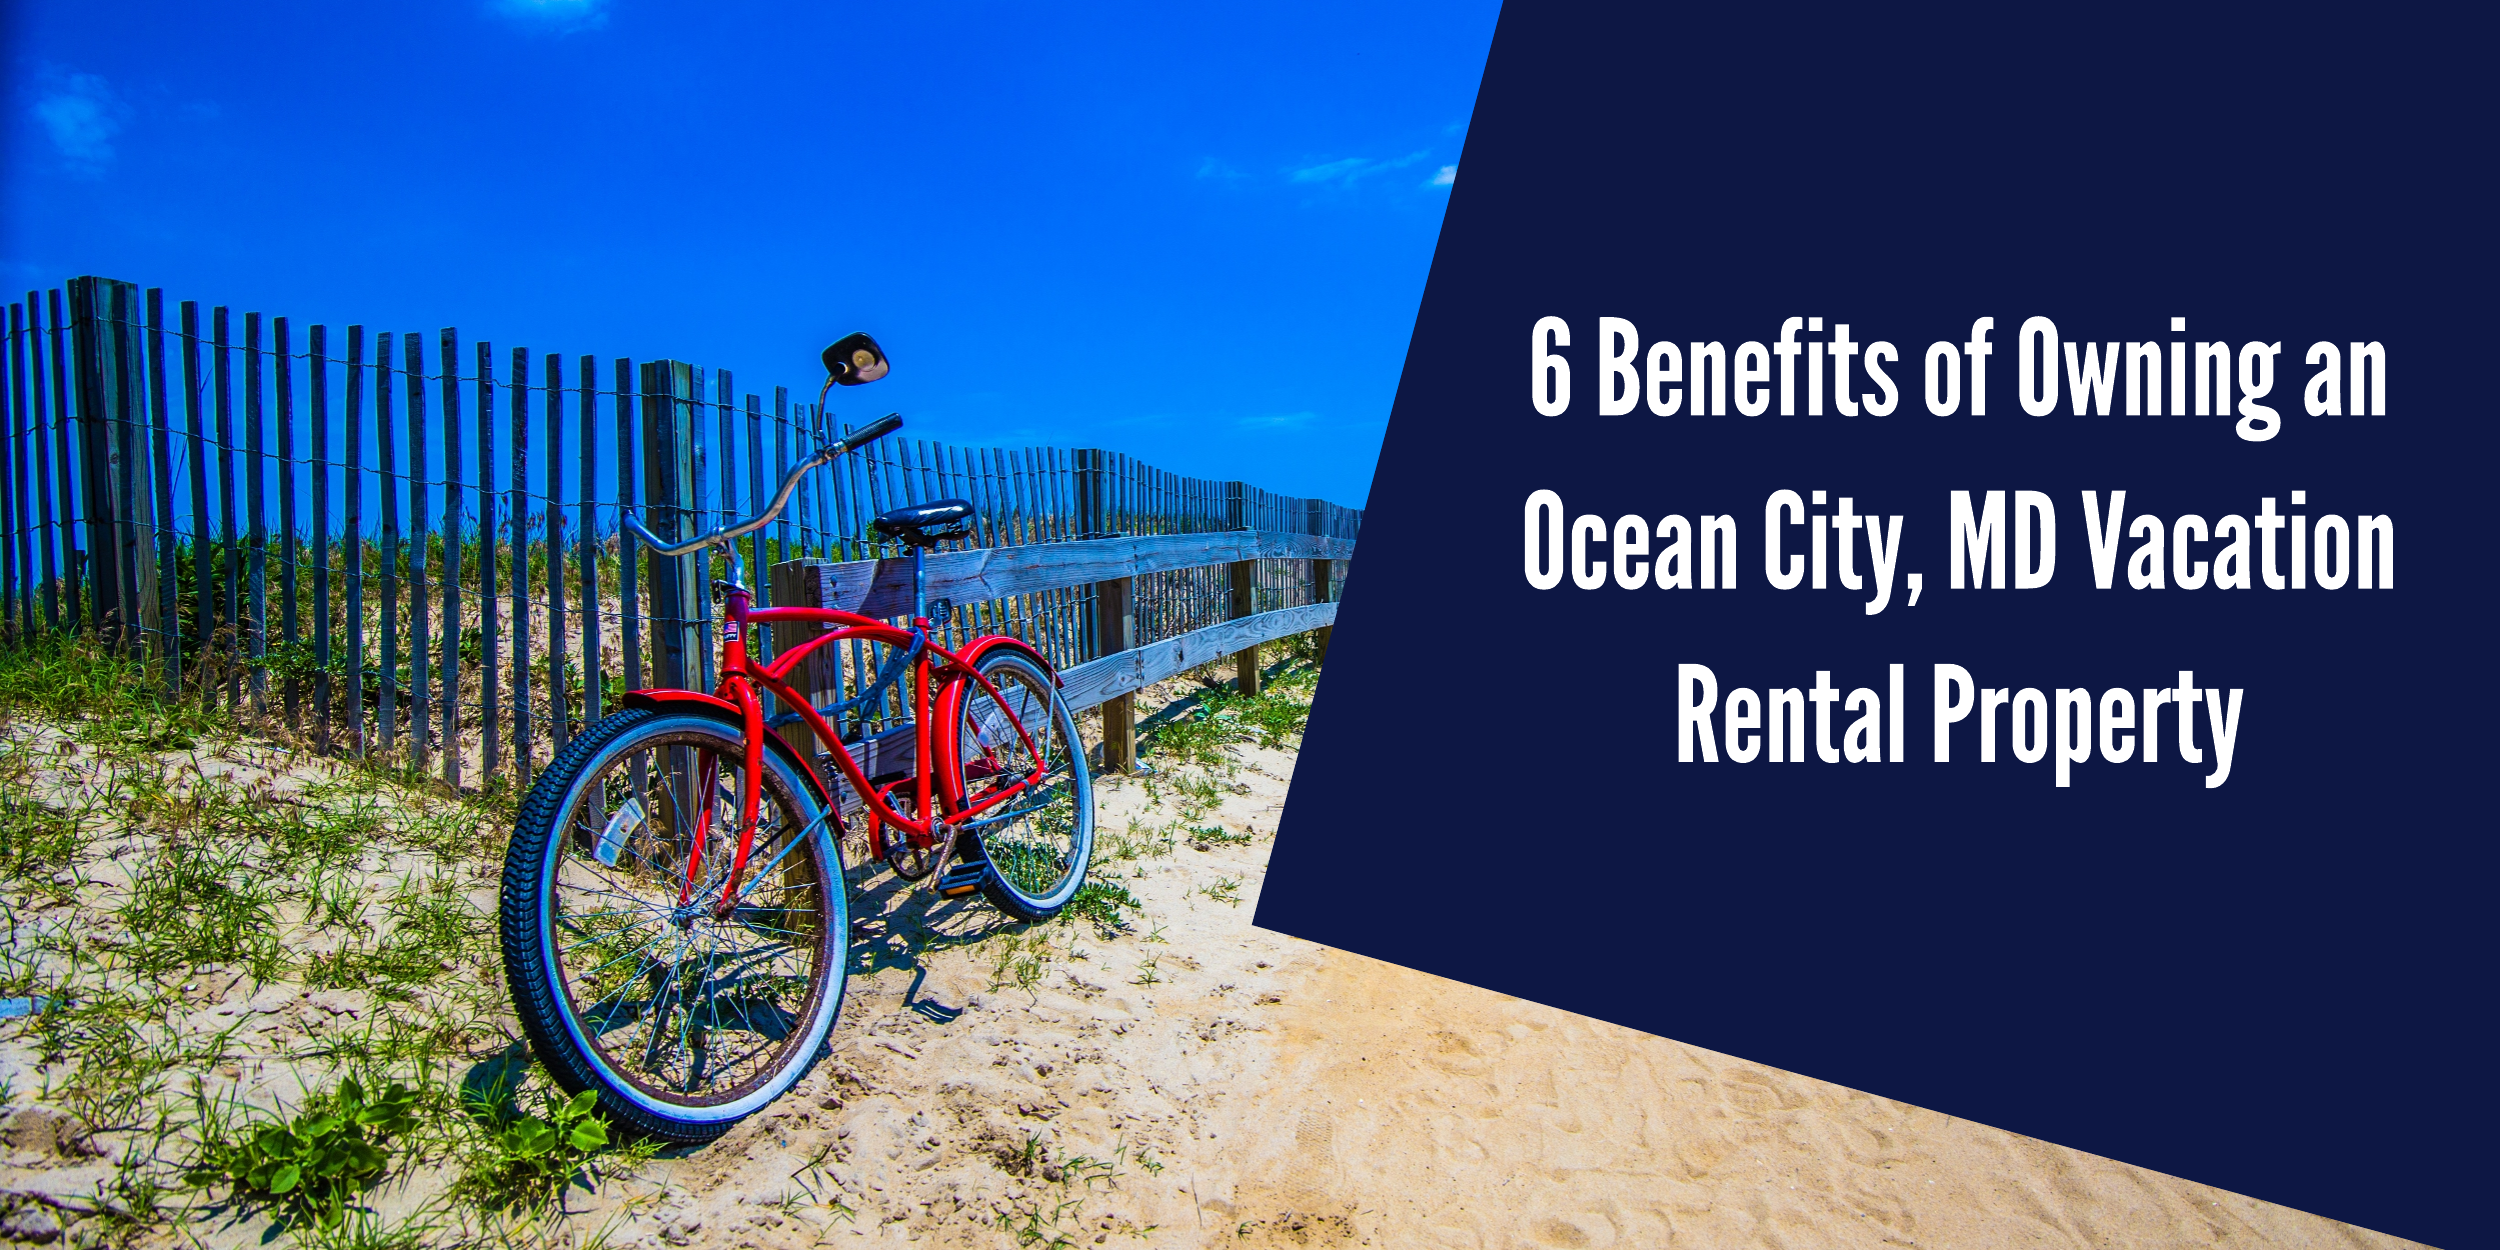 Blog Benefits of Owning OC Vacation Rentals